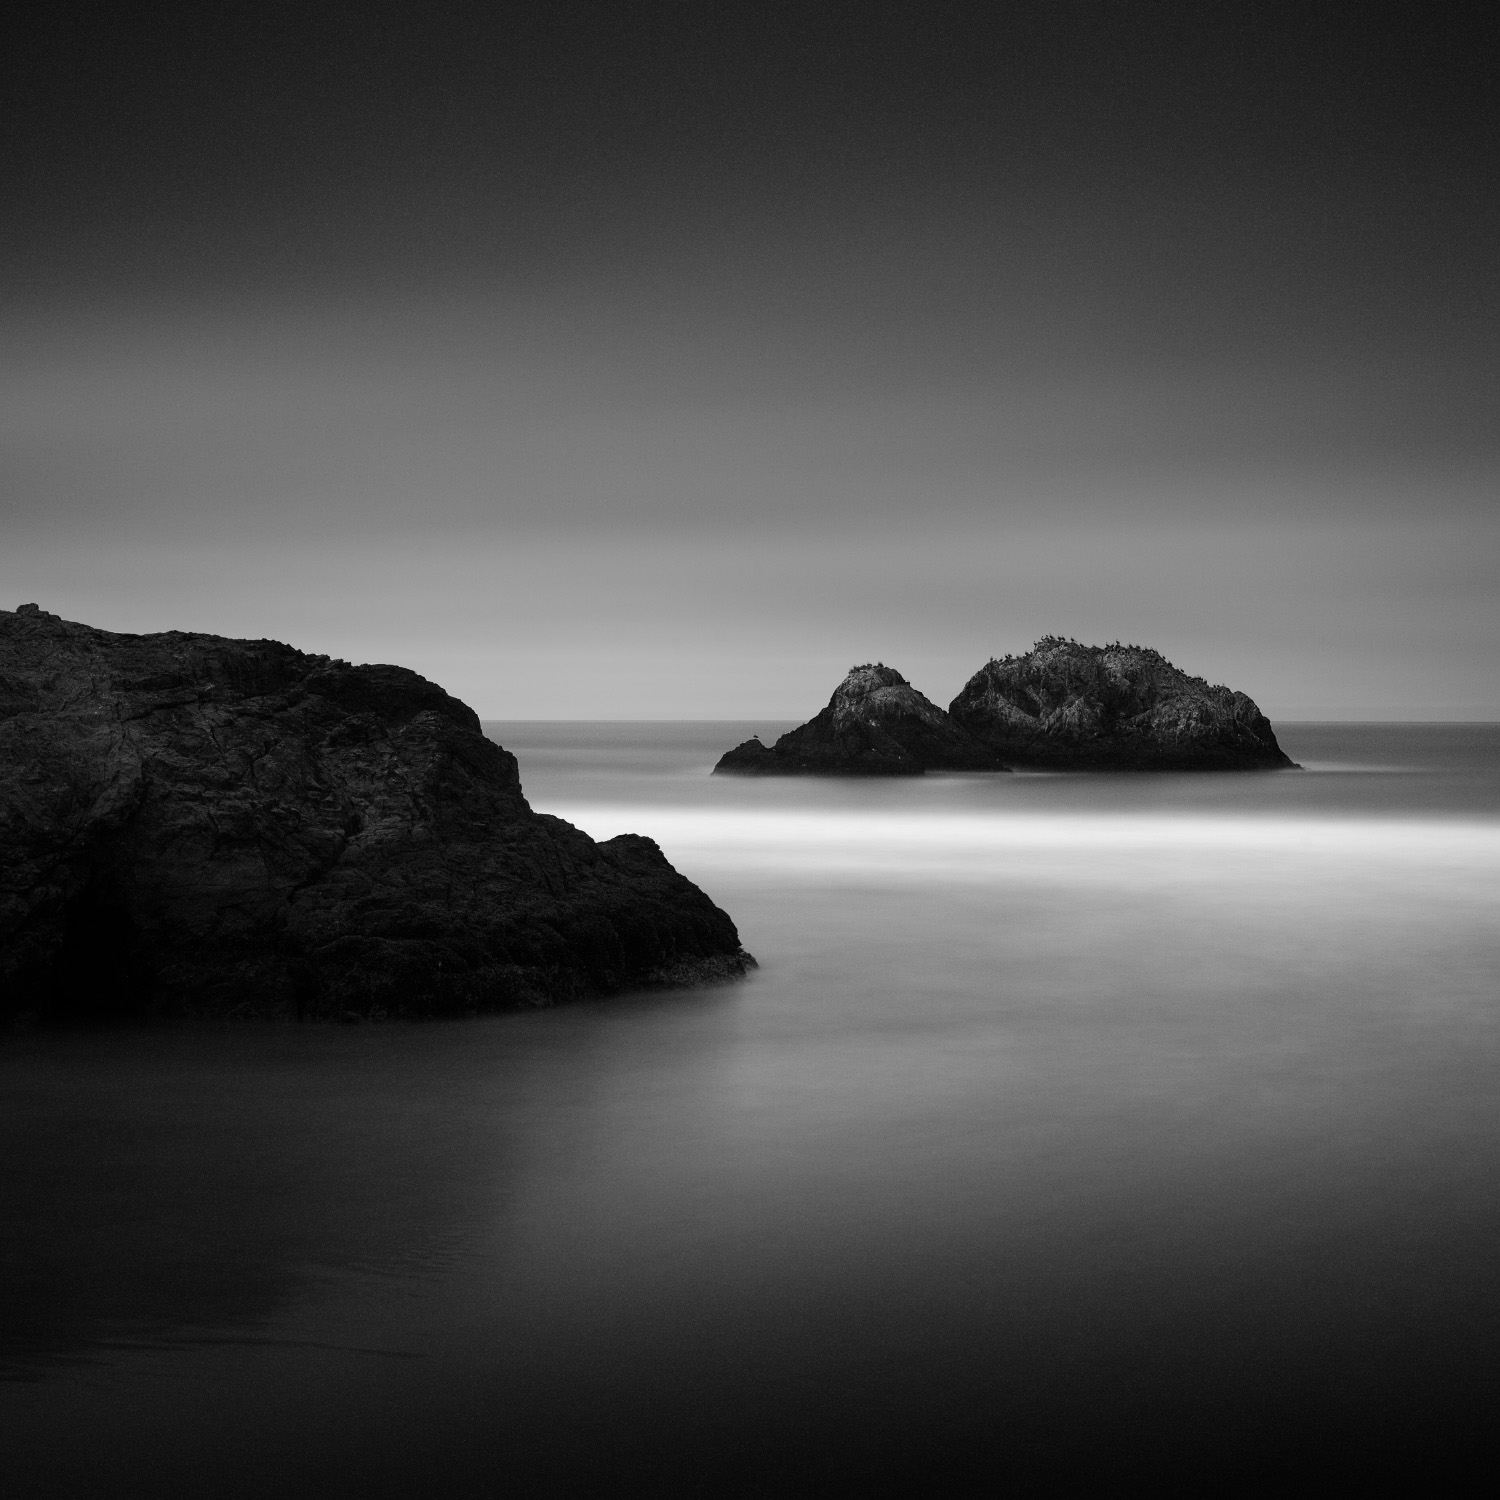 The Seal Rocks, shot from Sutro Baths, in San Francisco, USA.